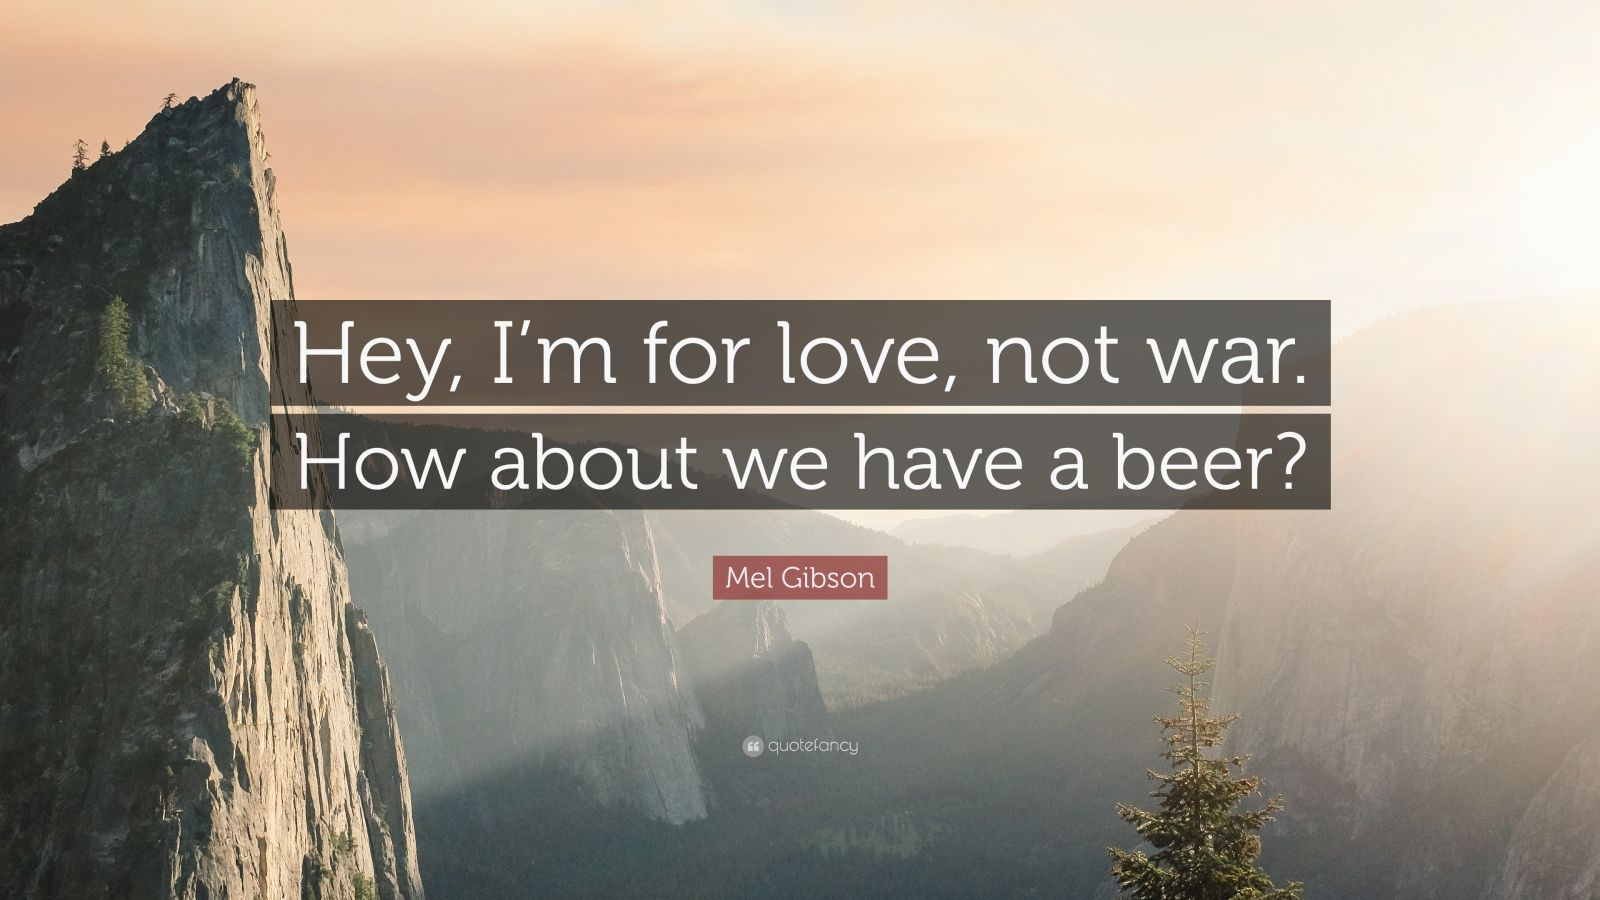 """Mel Gibson Quote: """"Hey, I'm for love, not war. How about we have a beer?"""""""